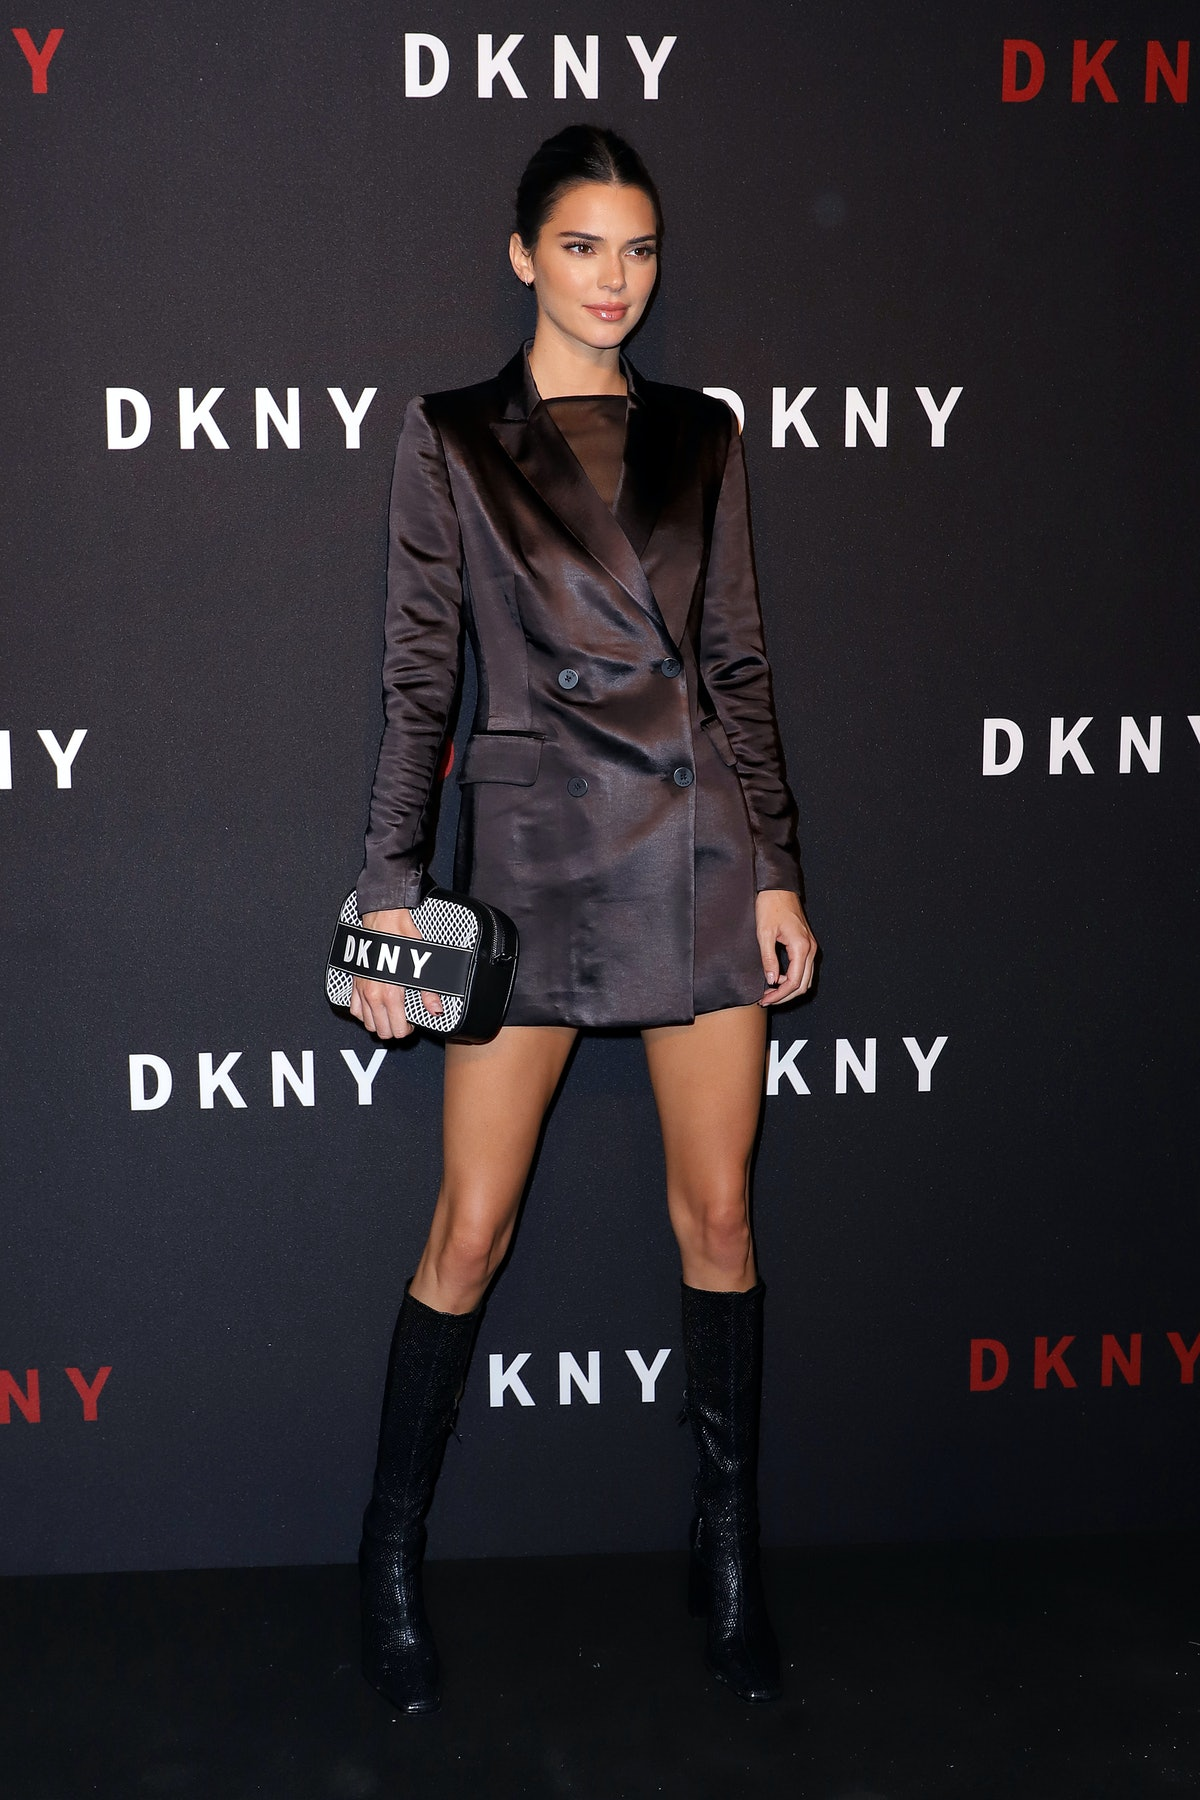 NEW YORK, NEW YORK - SEPTEMBER 09: Kendall Jenner  attends as DKNY turns 30 with special live perfor...